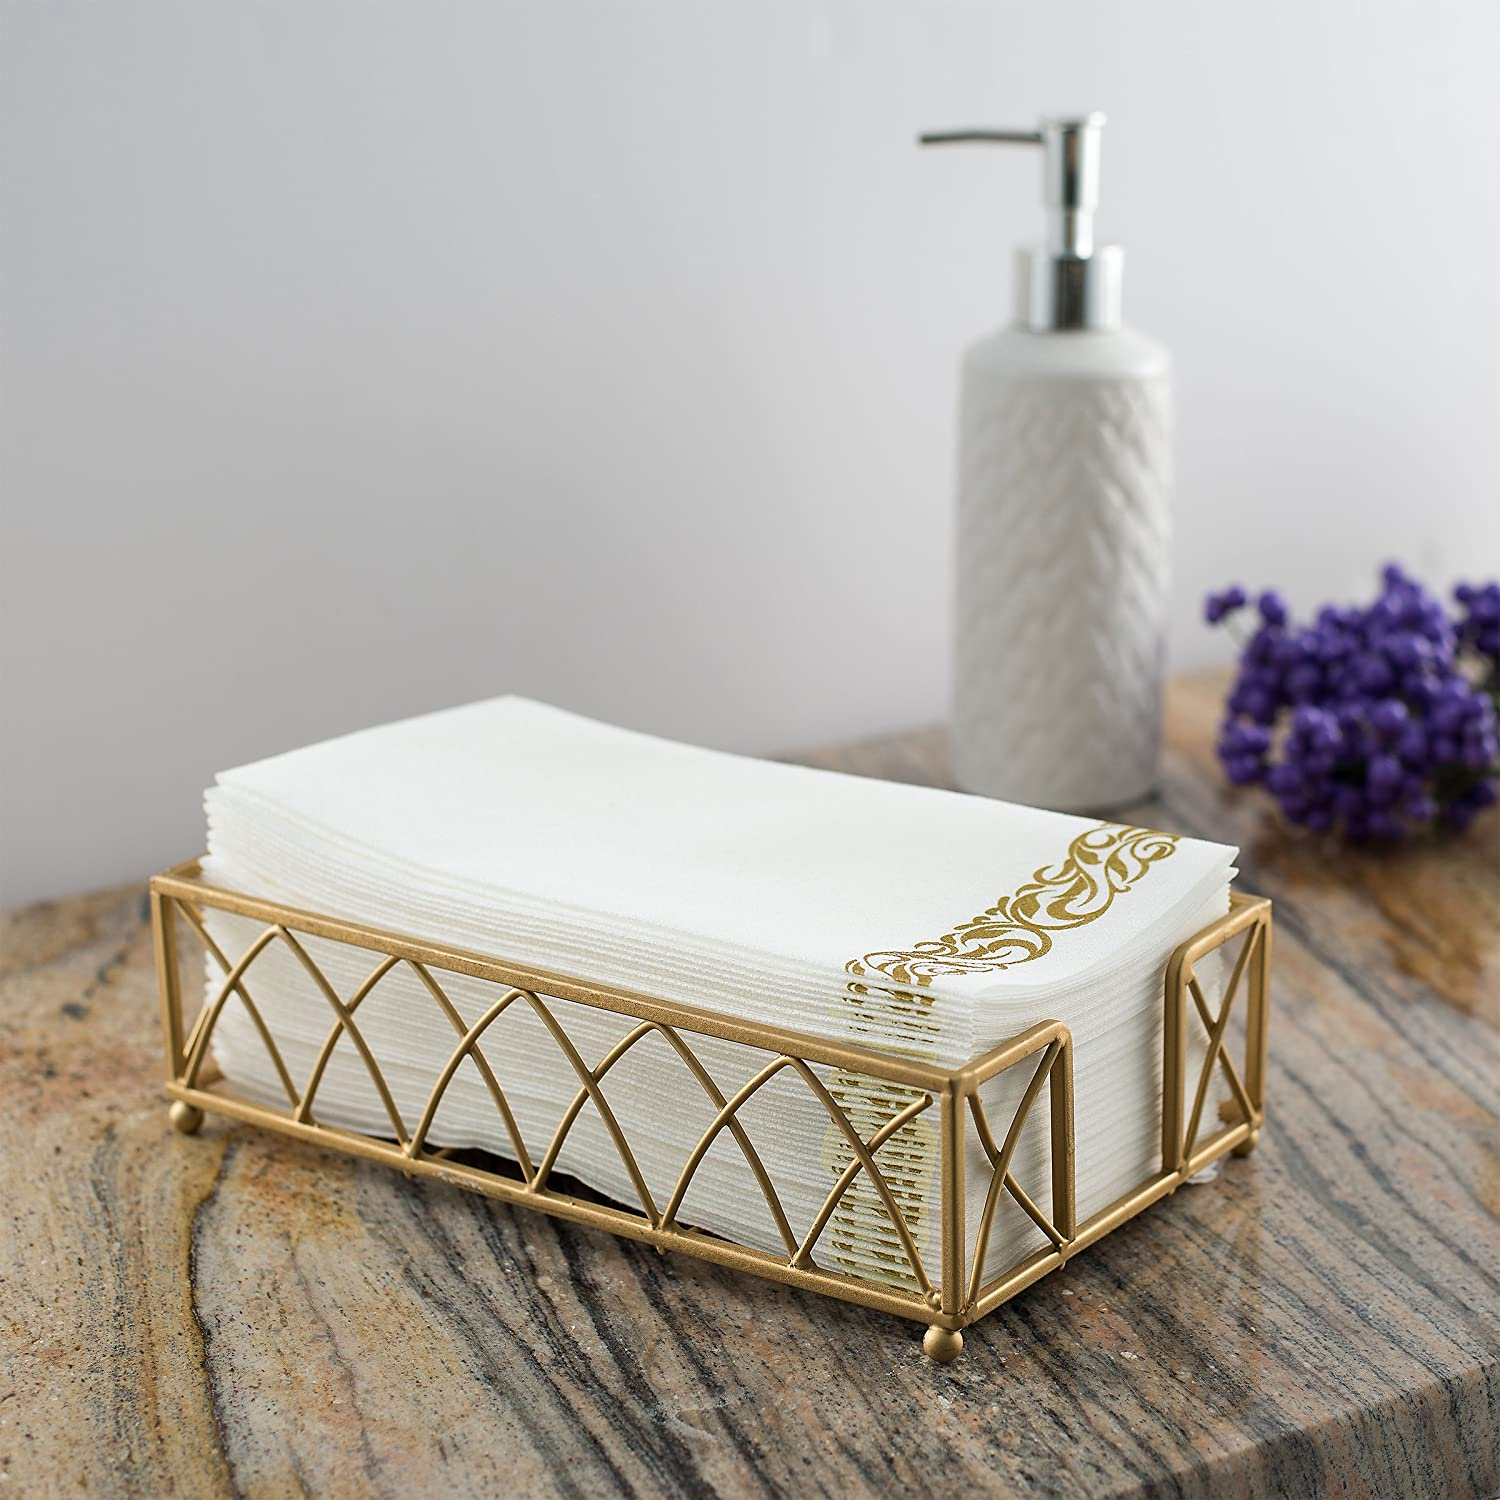 Decorative Hand Towels For Powder Room Amazoncom Bloomingoods Decorative Hand Towels Paper Napkins